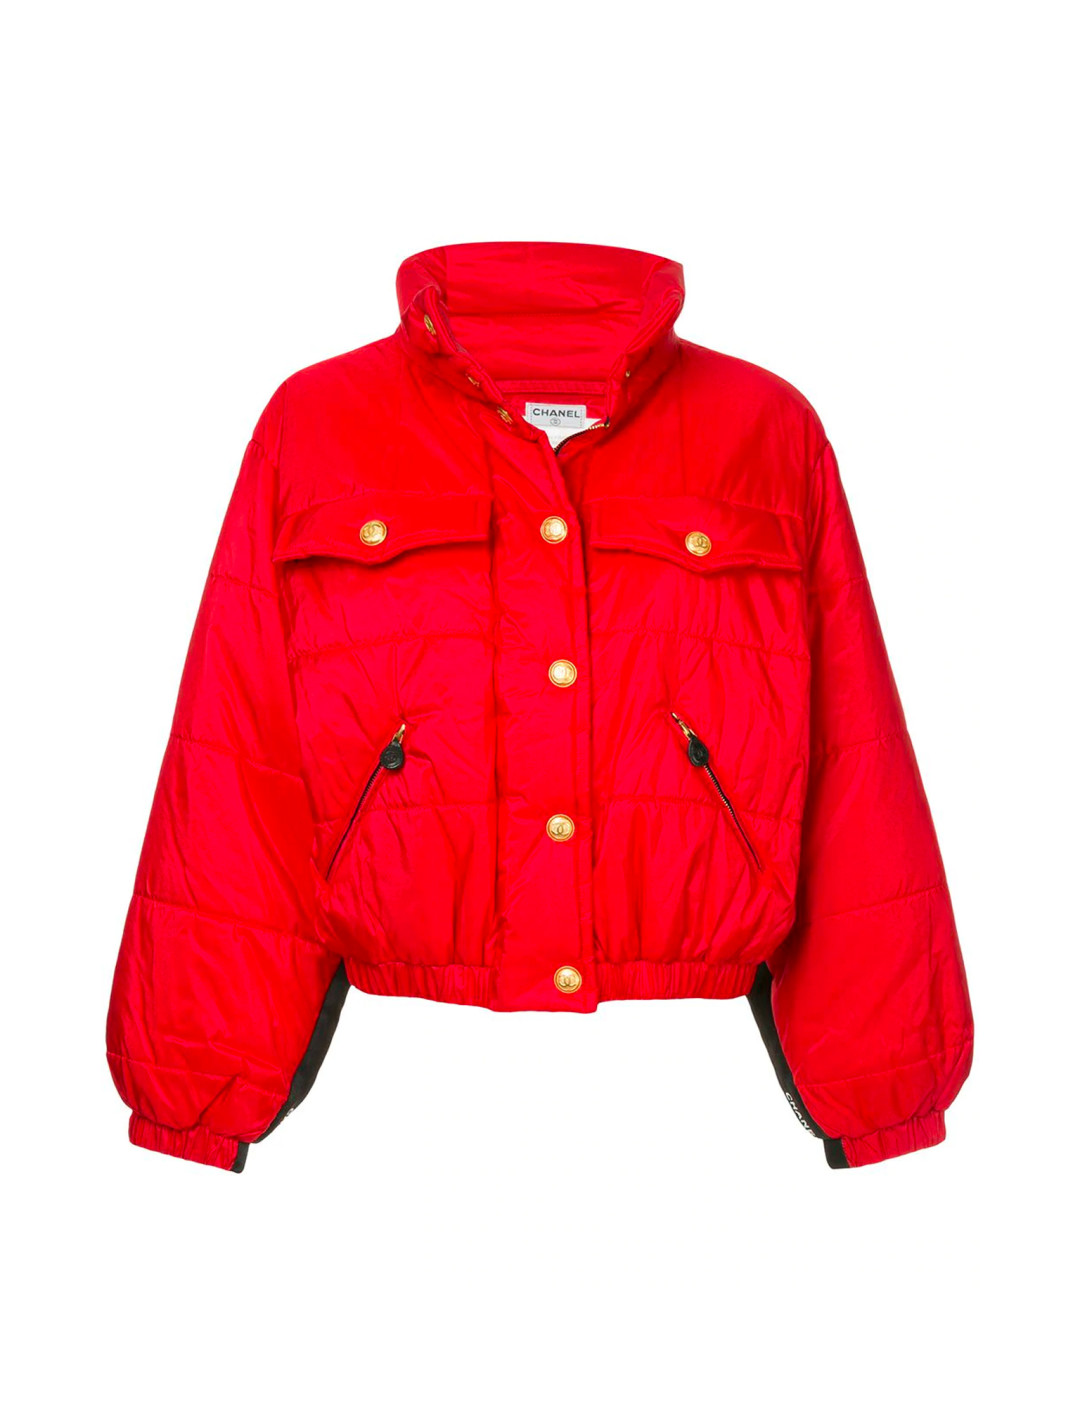 Lipstick Red Jacket